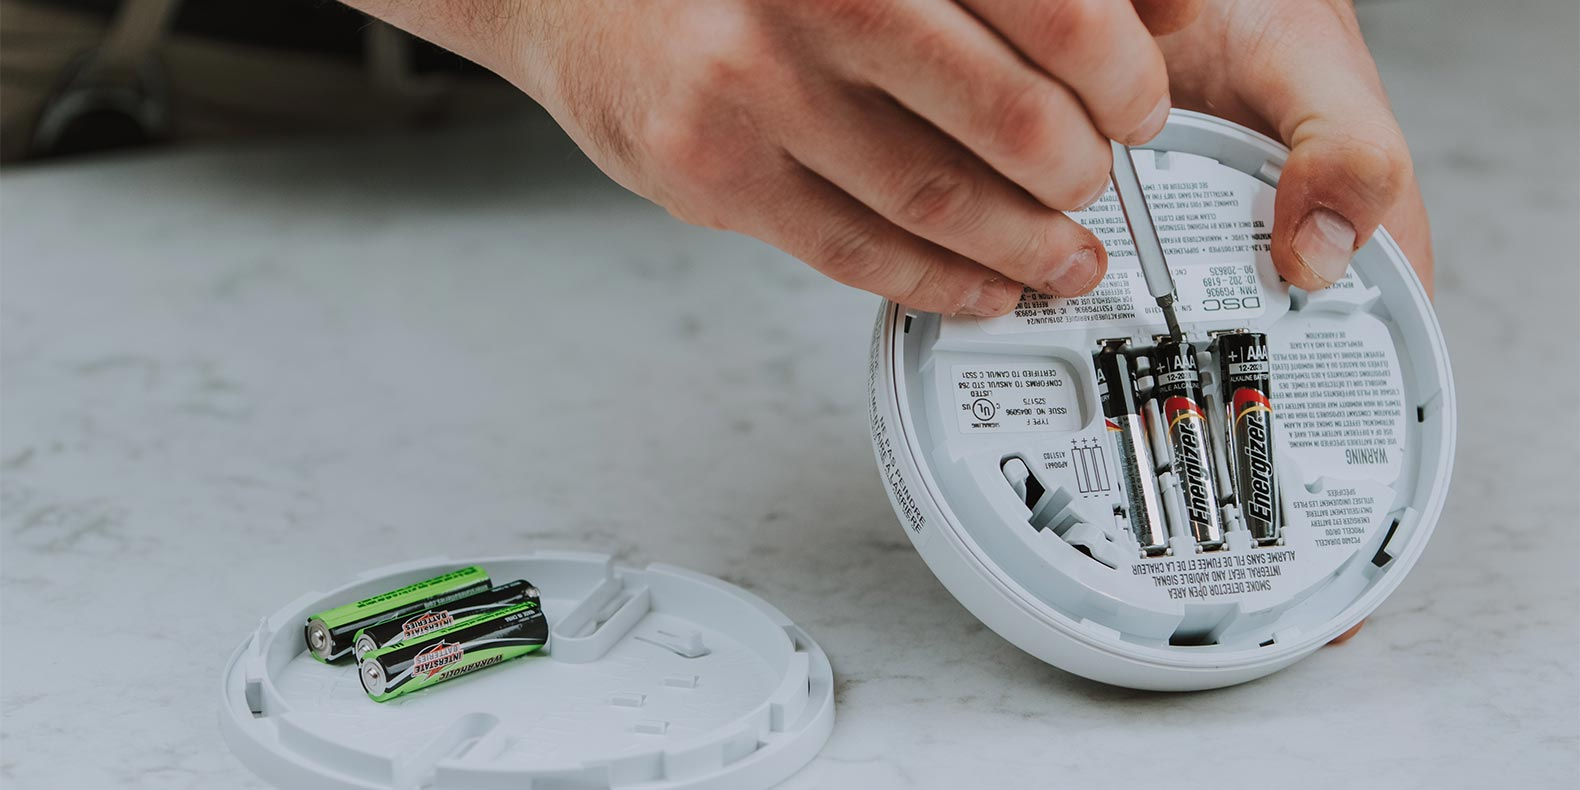 How to Change the Battery in Your Smoke Detector